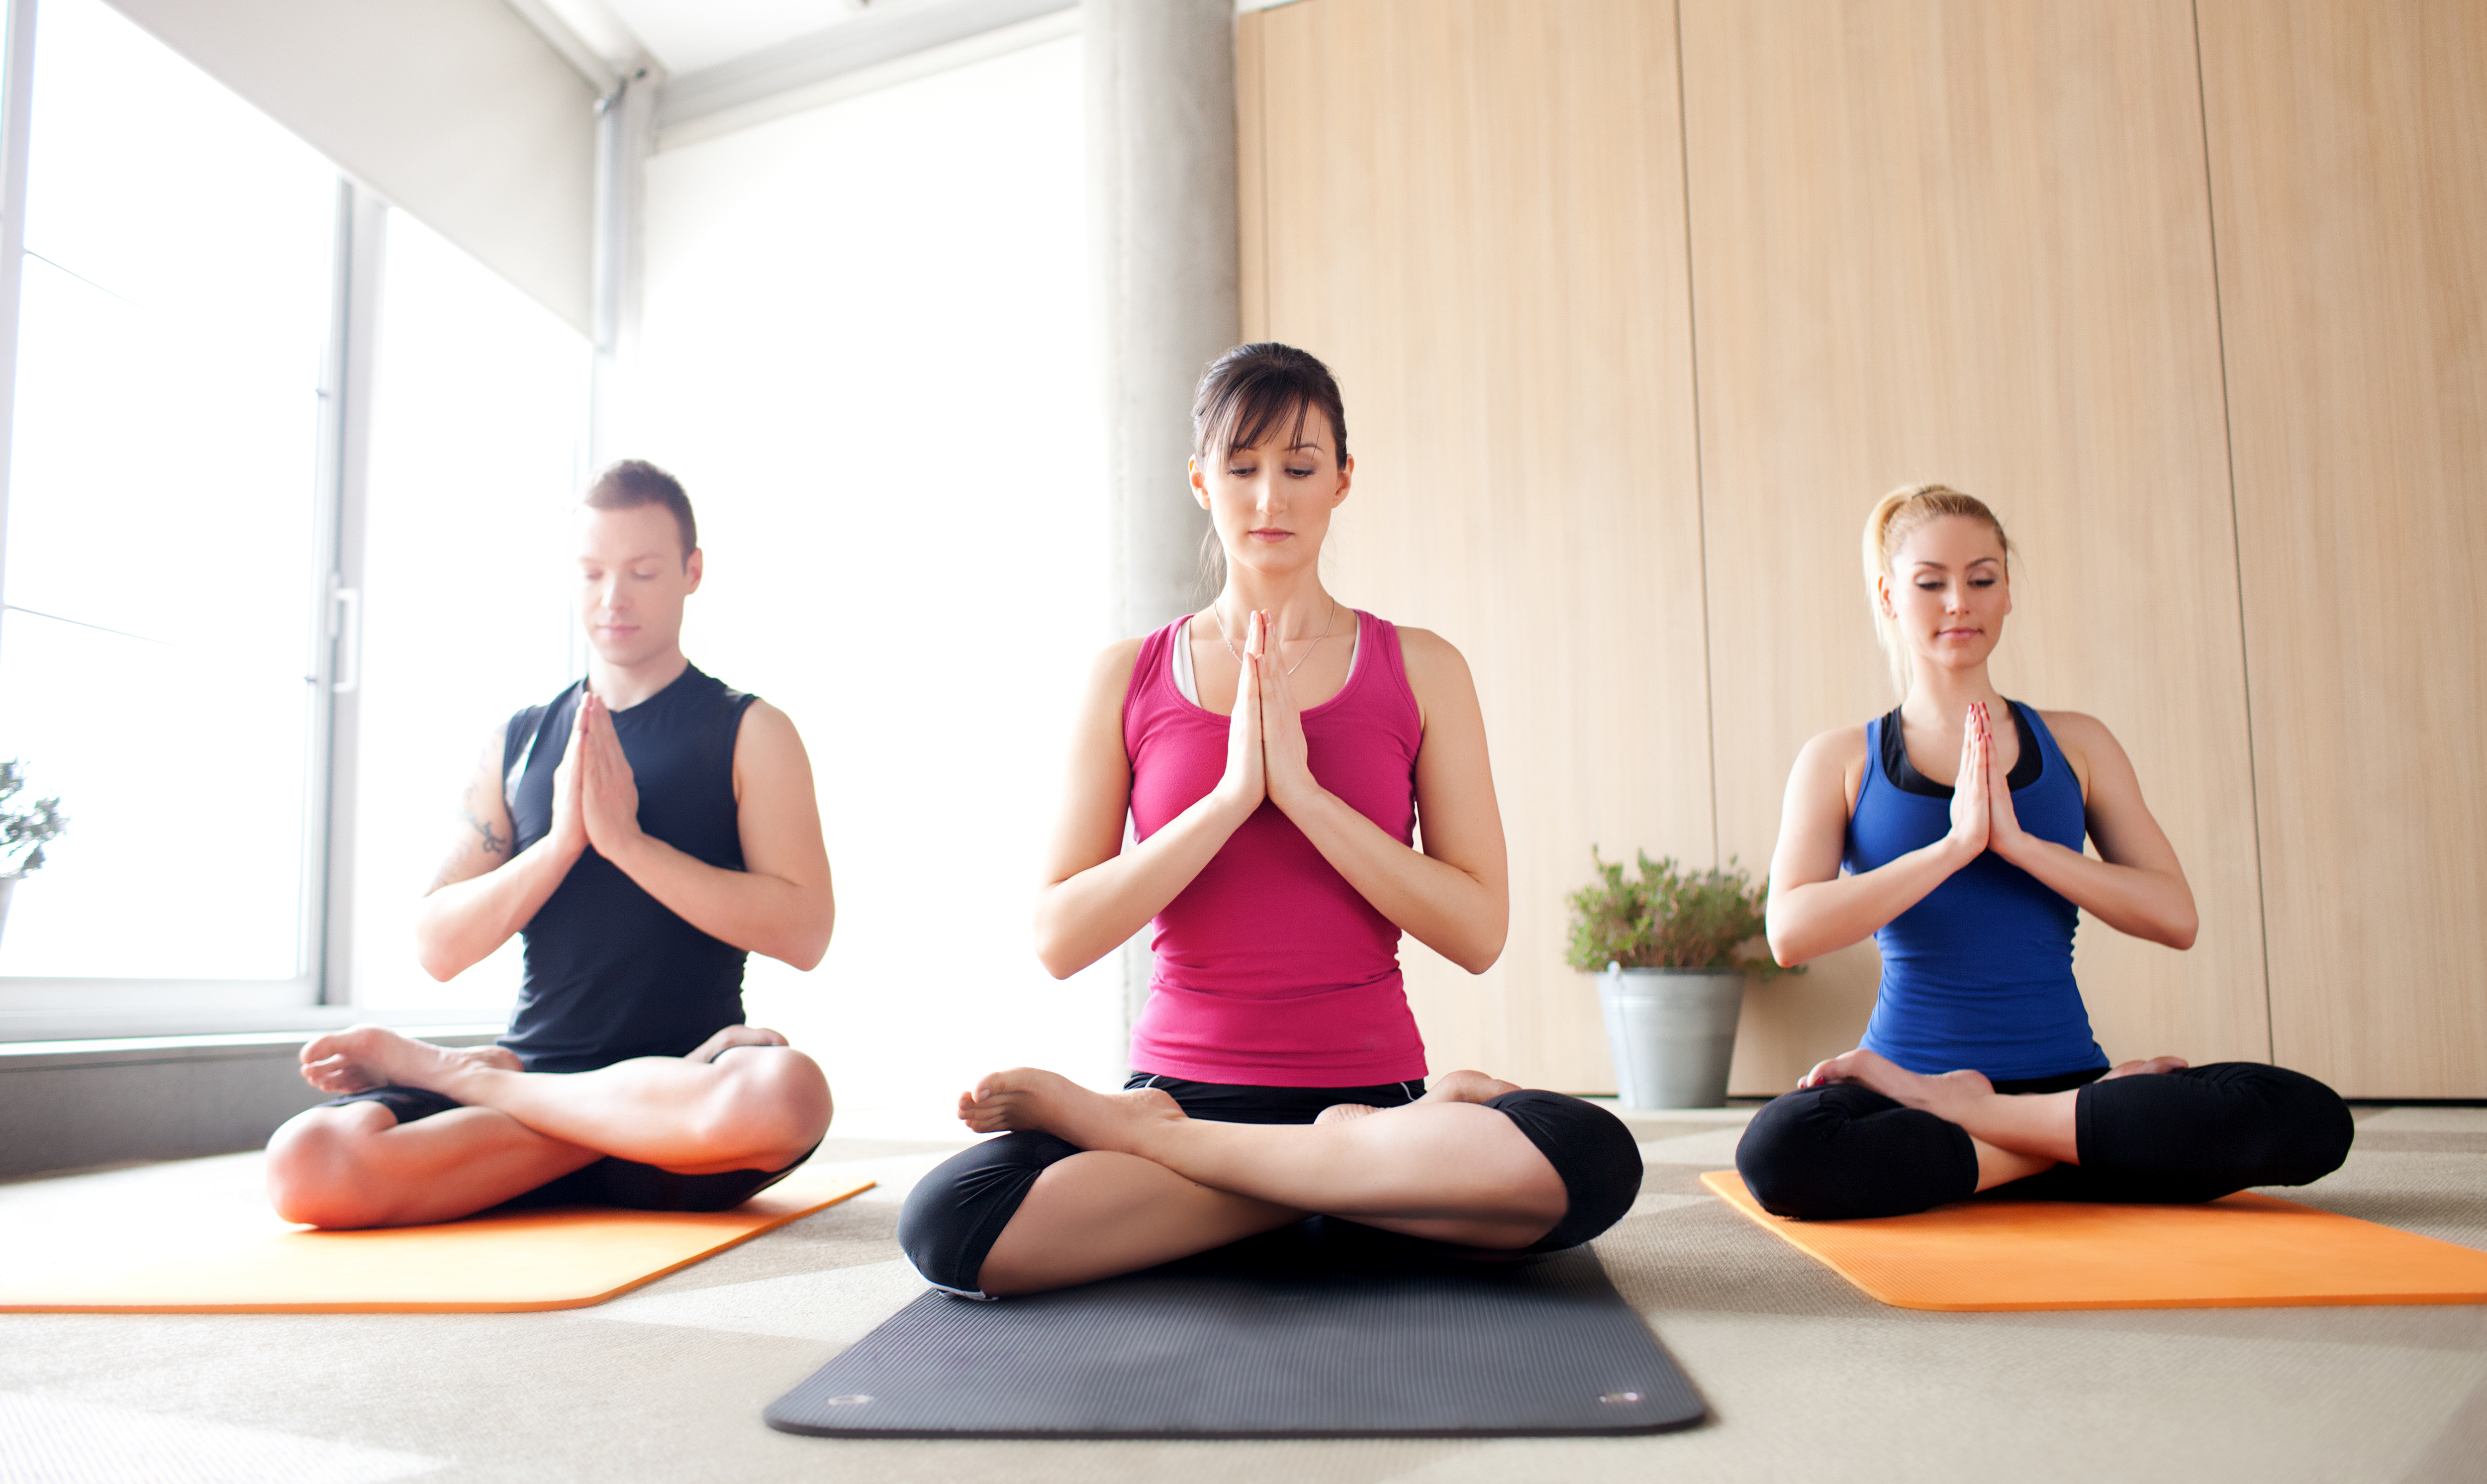 Vancouver, Canada: The Journey Of Yoga Through Mind